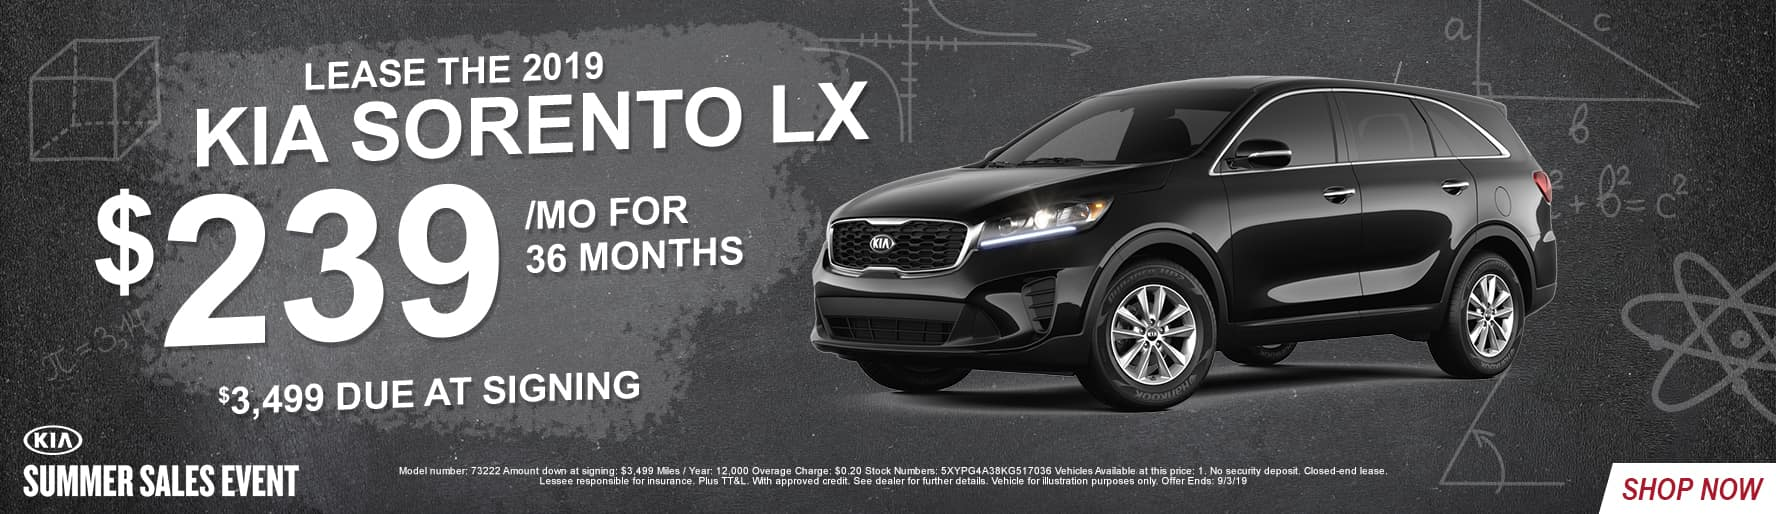 2019_Kia_South_Austin_Sorento_LX_Lease_Offers